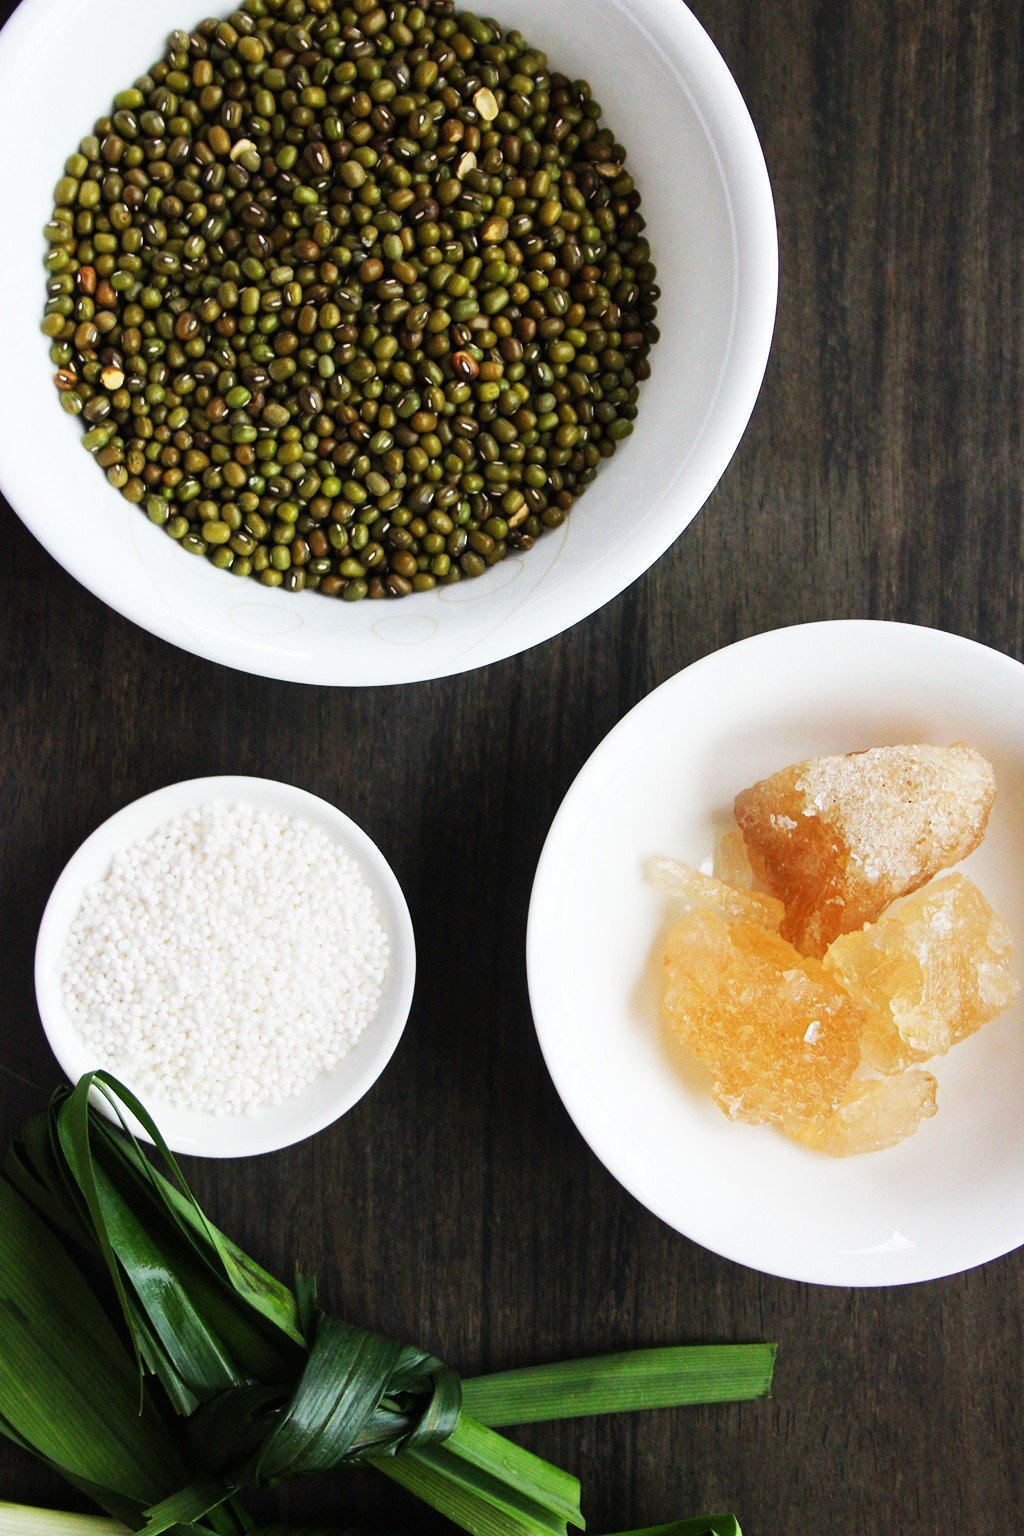 Sweet_Mung_Bean_Soup_with_Sago_Pearls2